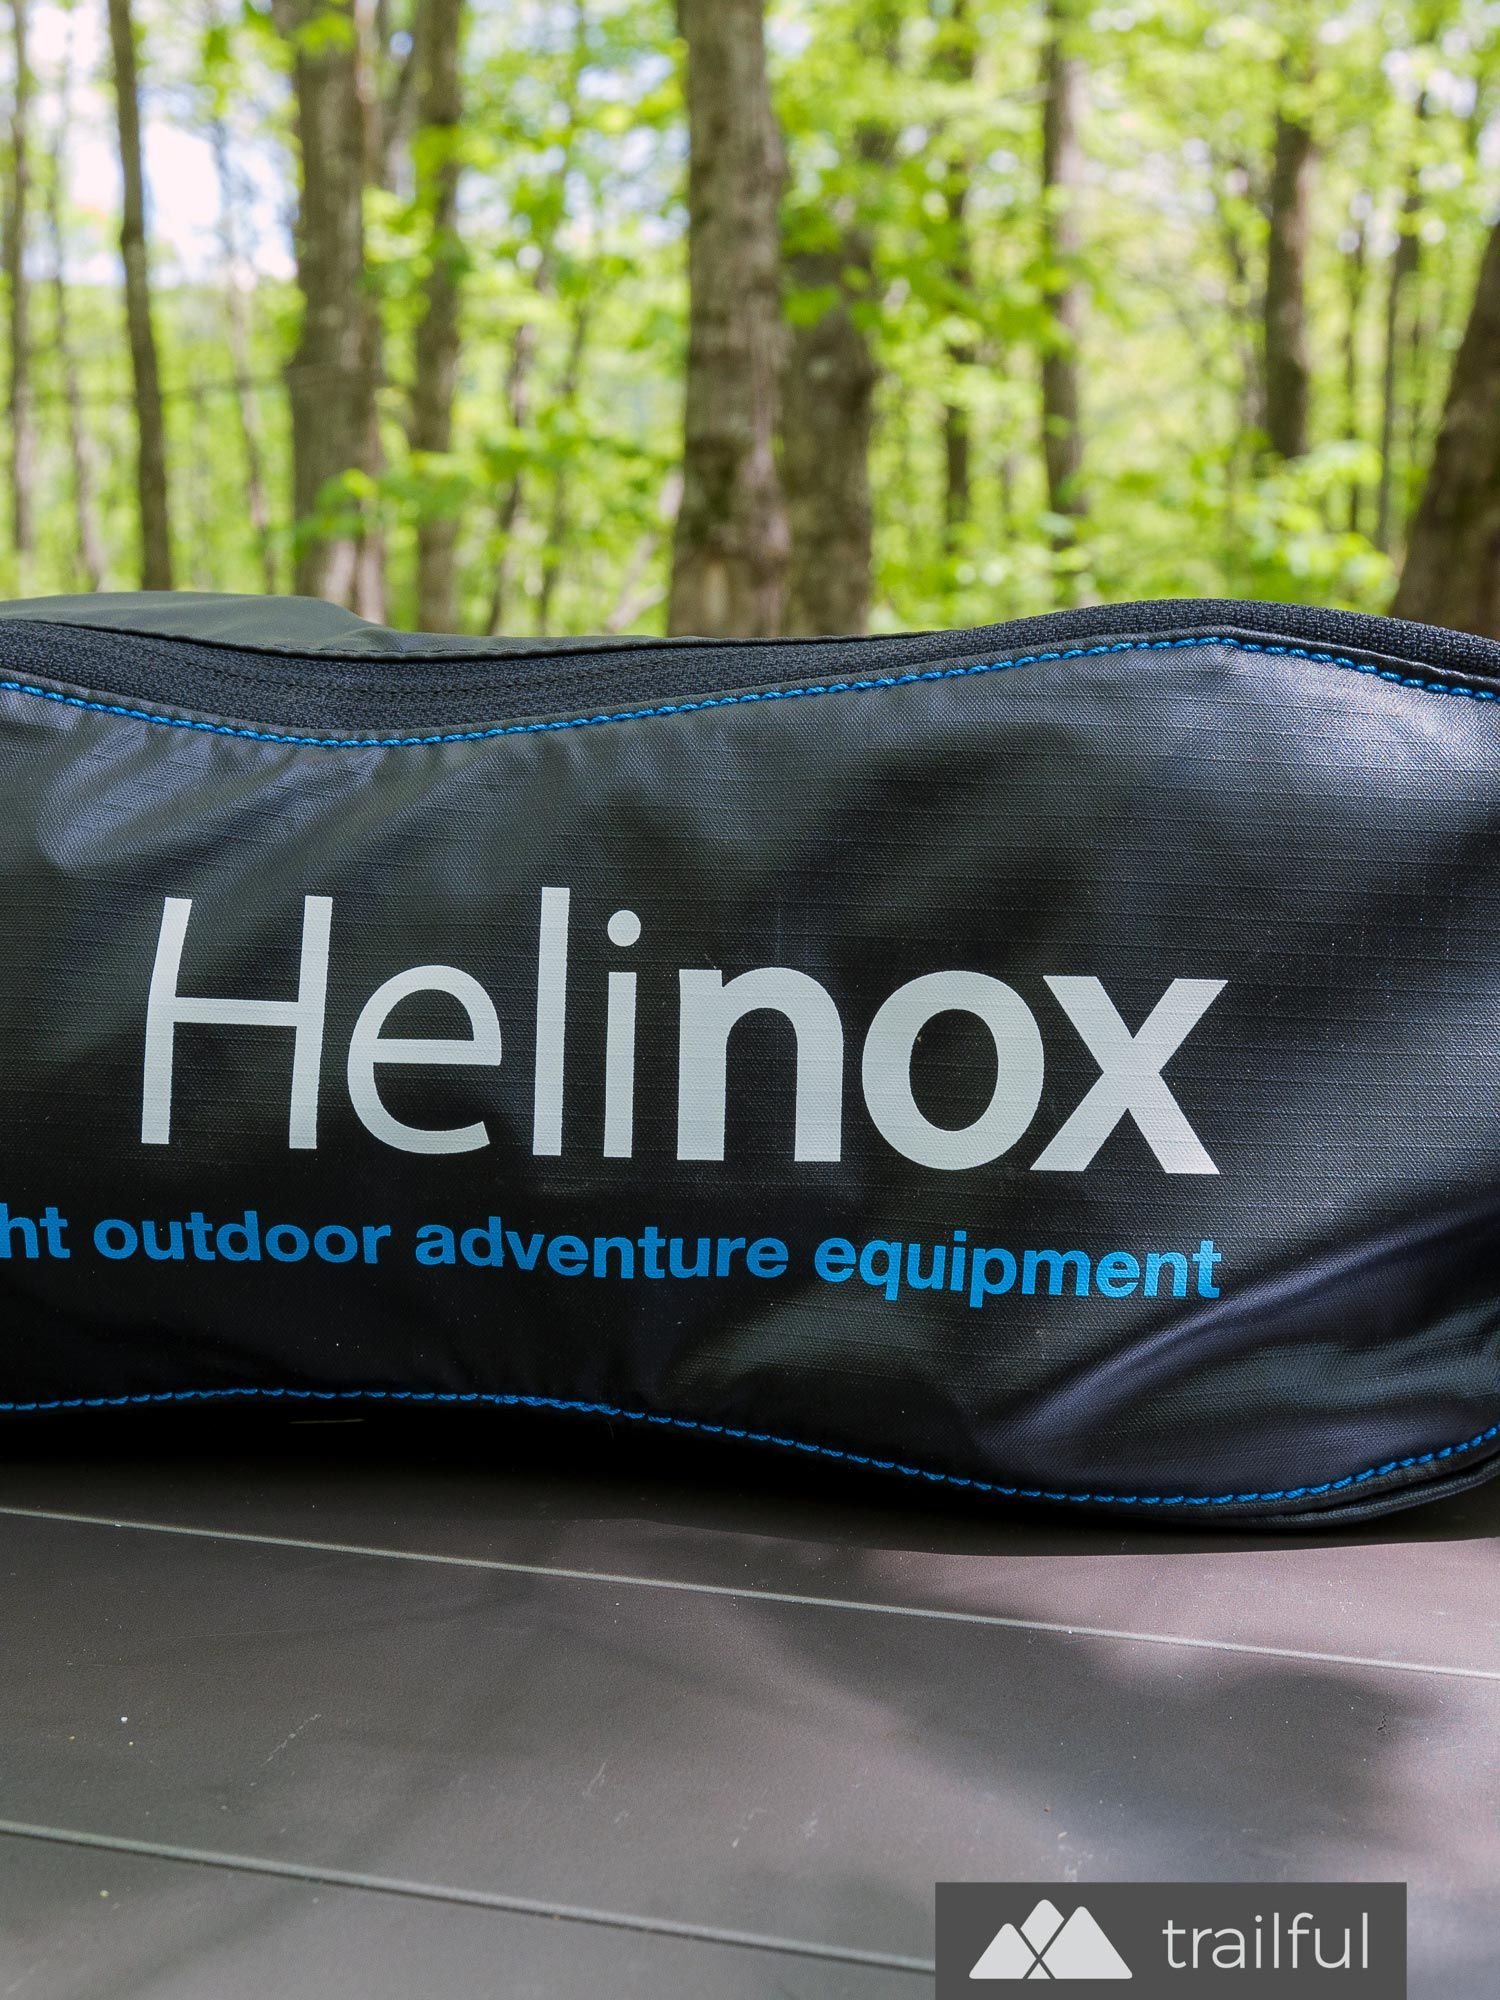 The Helinox Chair One packs small, making it our go-to camp chair for stashing in a backpack or camp duffel